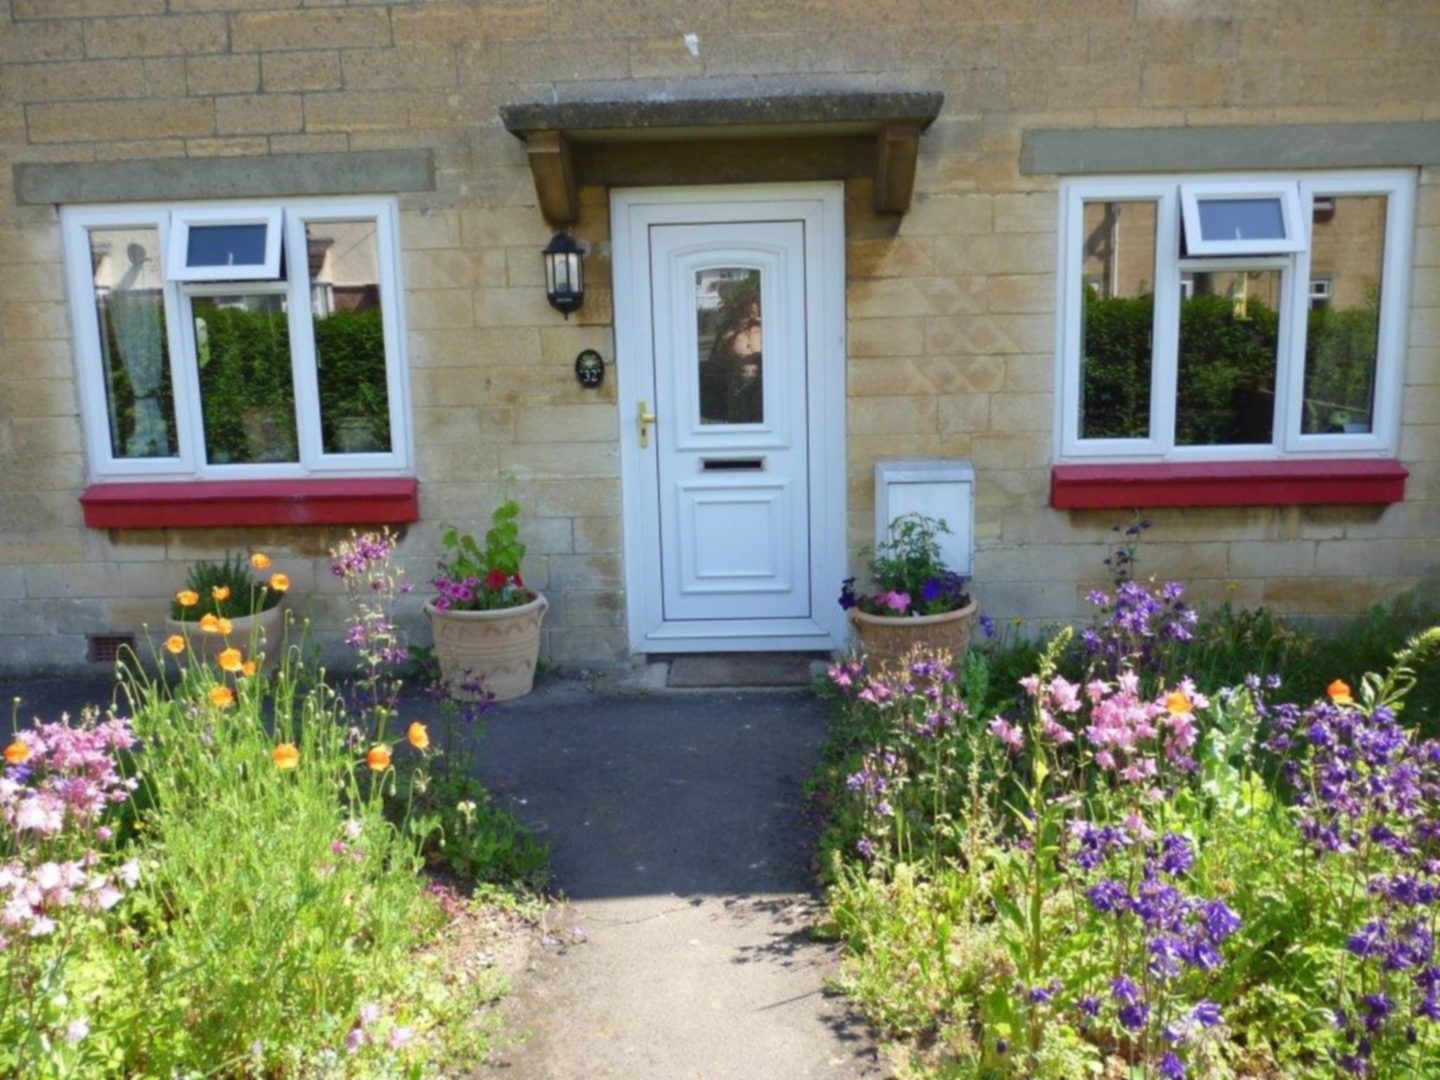 A close up of a flower garden in front of a house at Calne Bed and Breakfast.